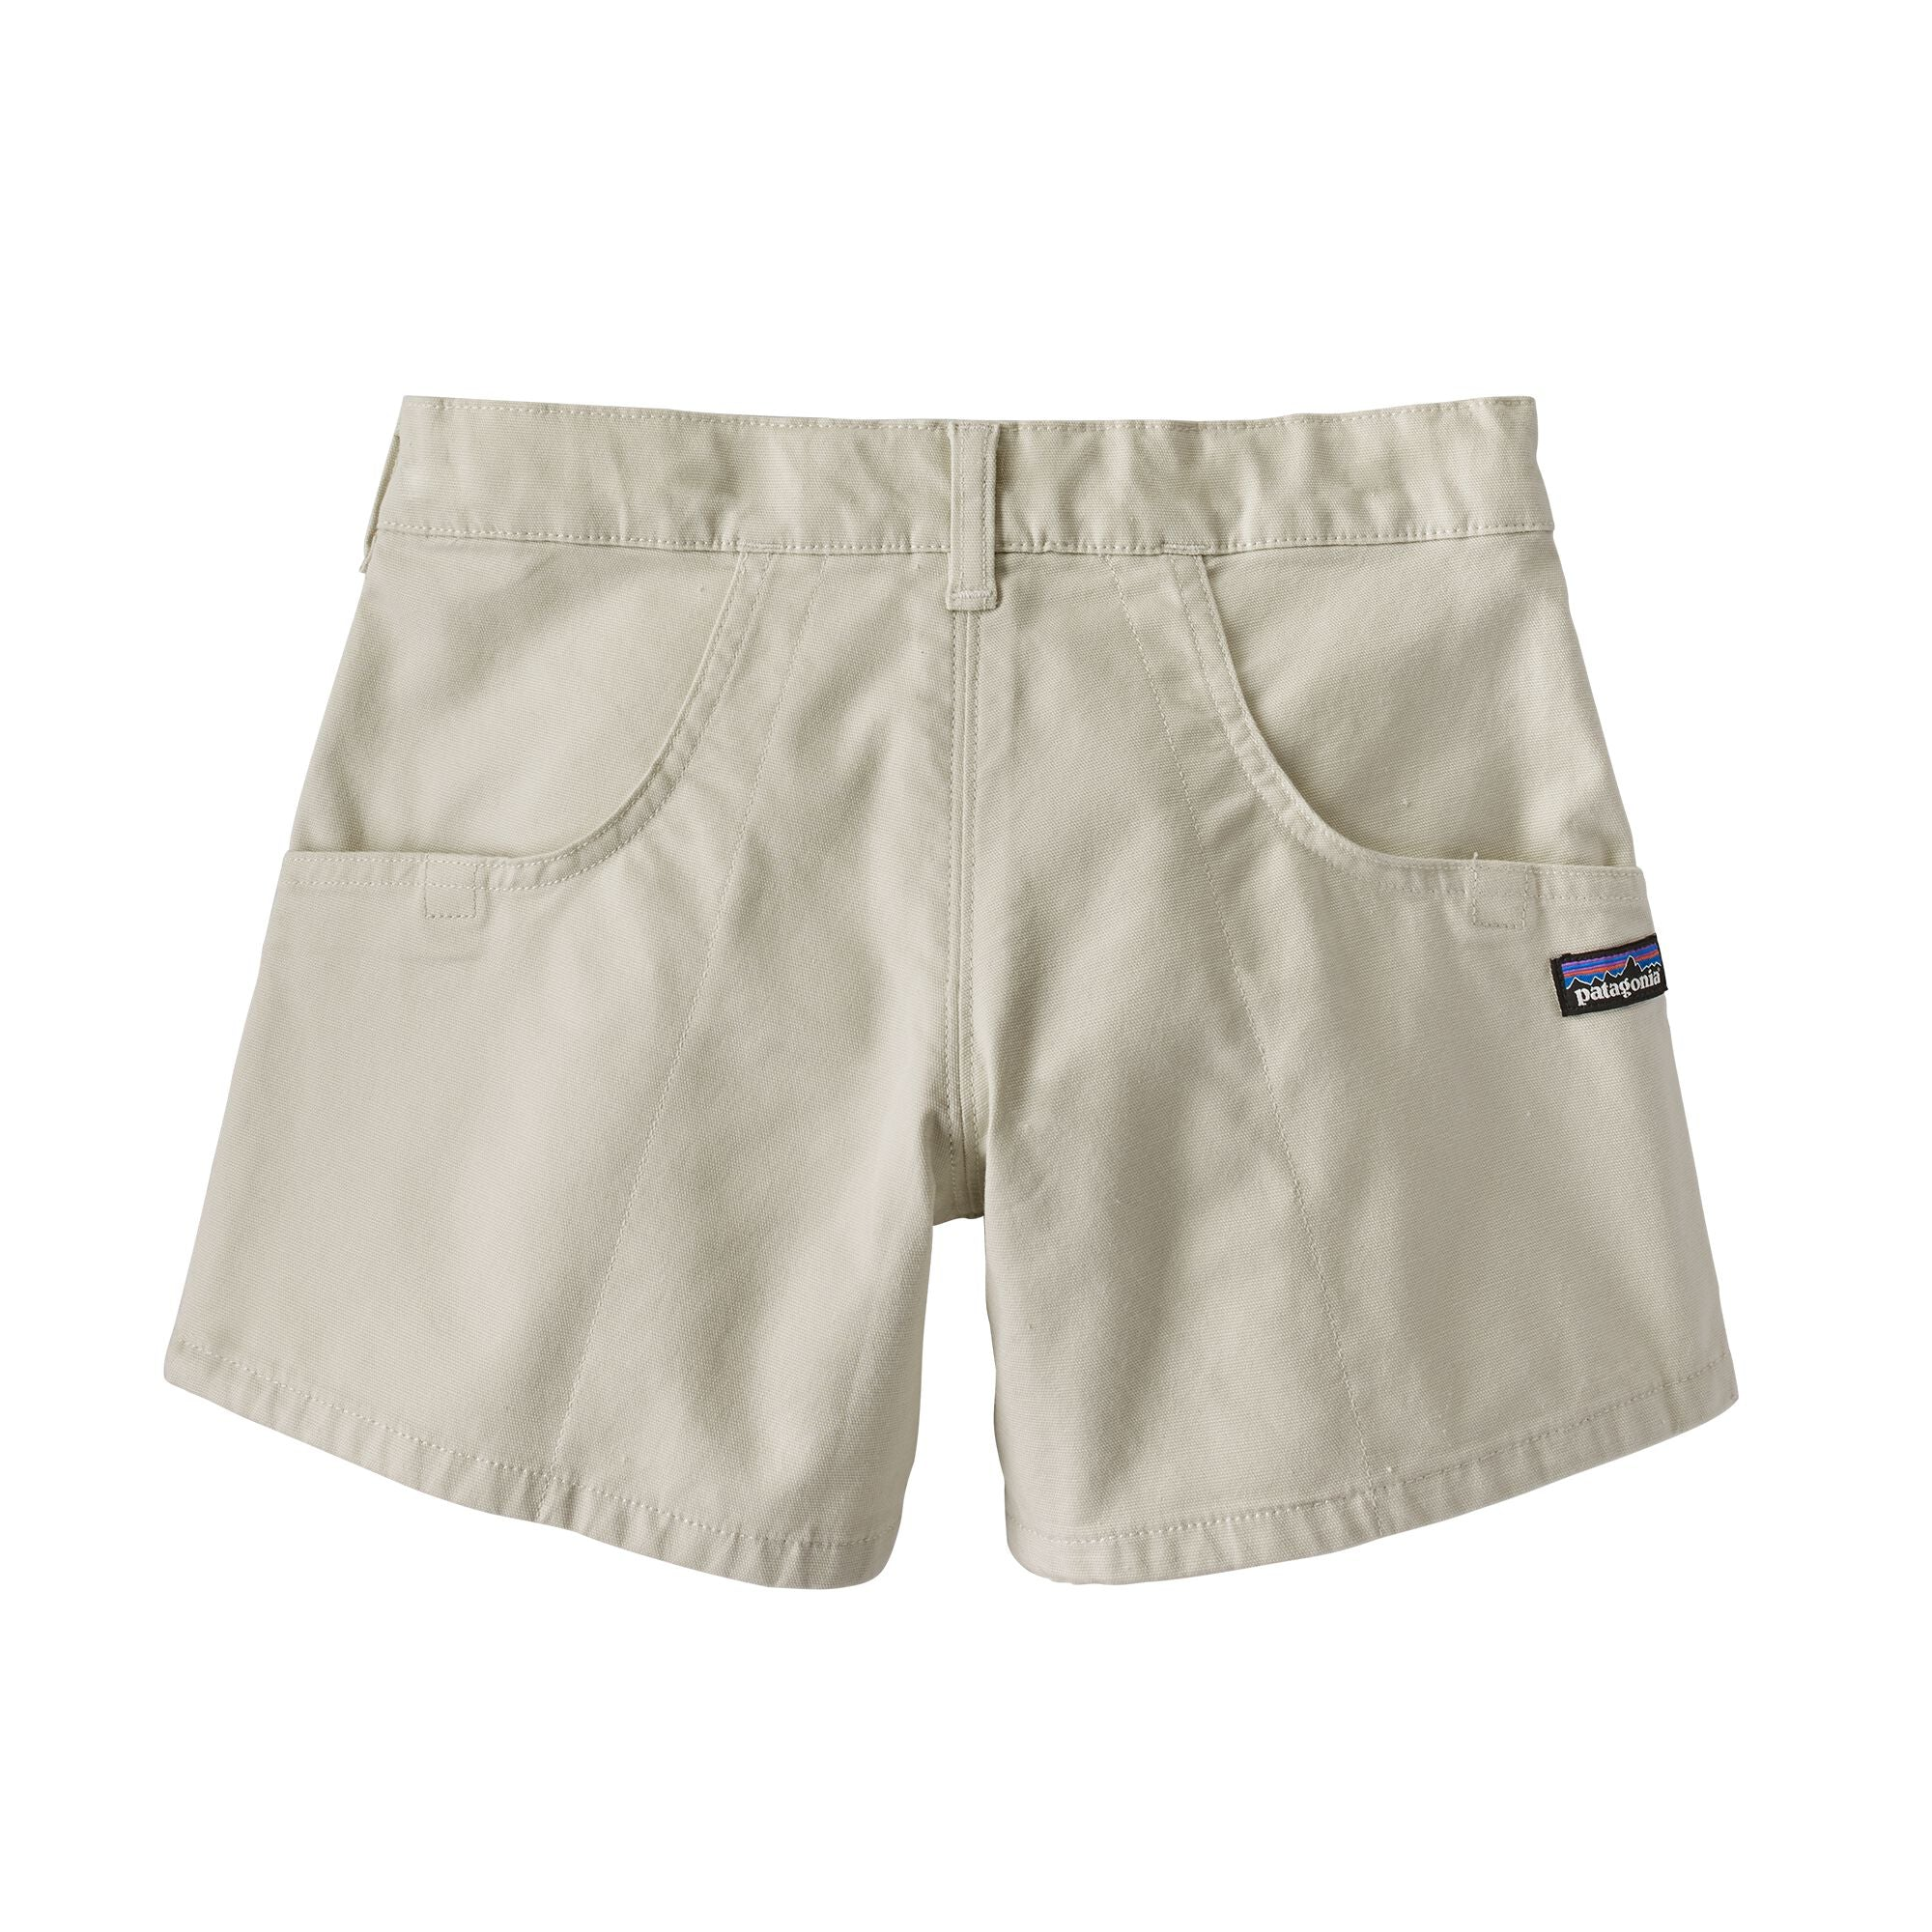 Shorts Niña Stand Up® Shorts Blanco Patagonia